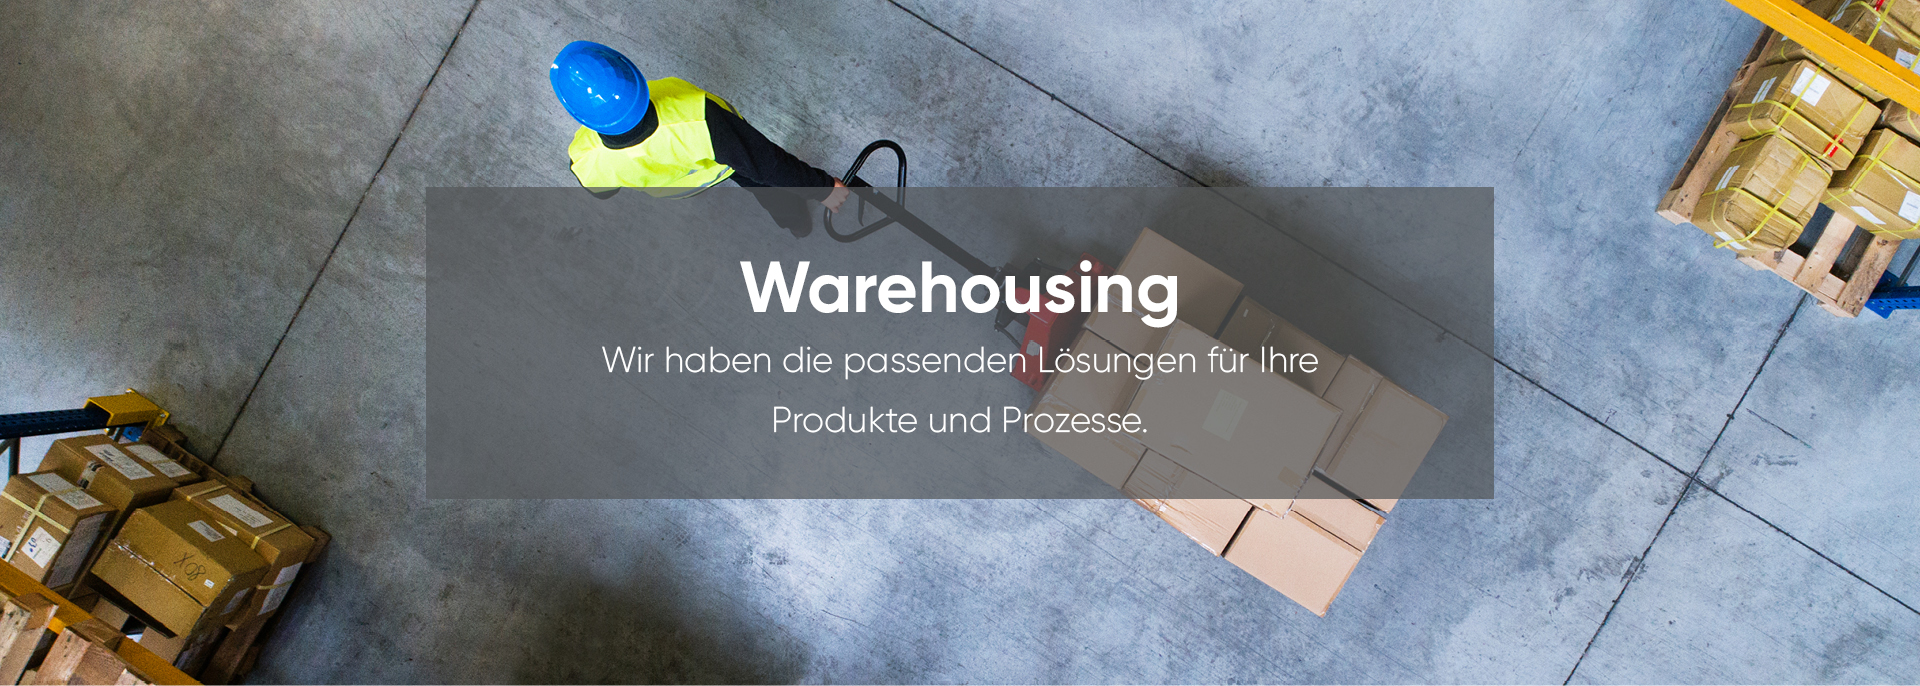 Warehousing by Deventer